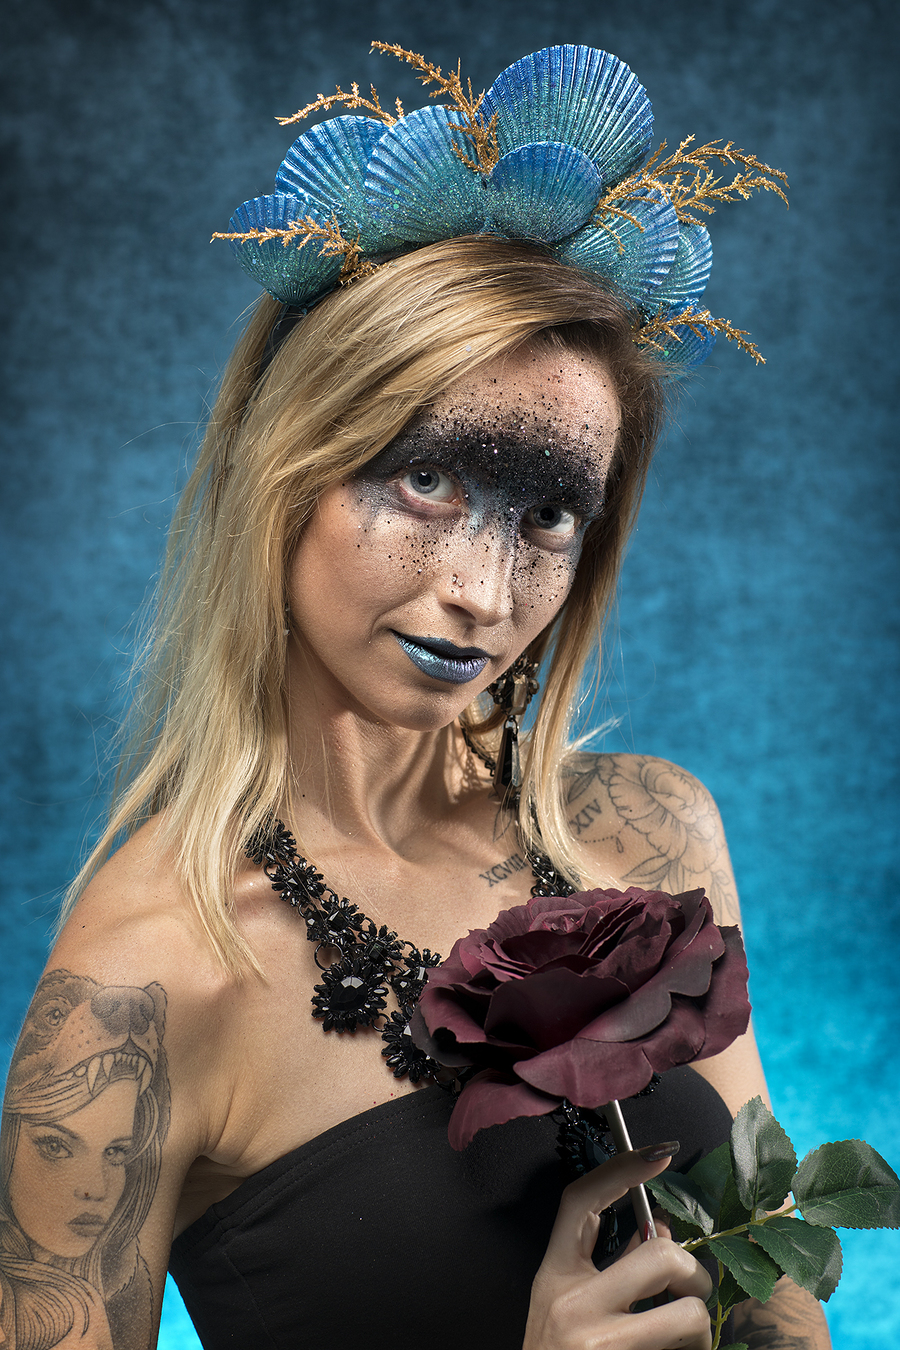 Glitter Girl / Photography by photo_lee, Model CJlock, Makeup by Sister Of Sinister, Stylist Sister Of Sinister, Taken at Rochester Studios, Hair styling by Sister Of Sinister / Uploaded 21st September 2019 @ 04:47 PM